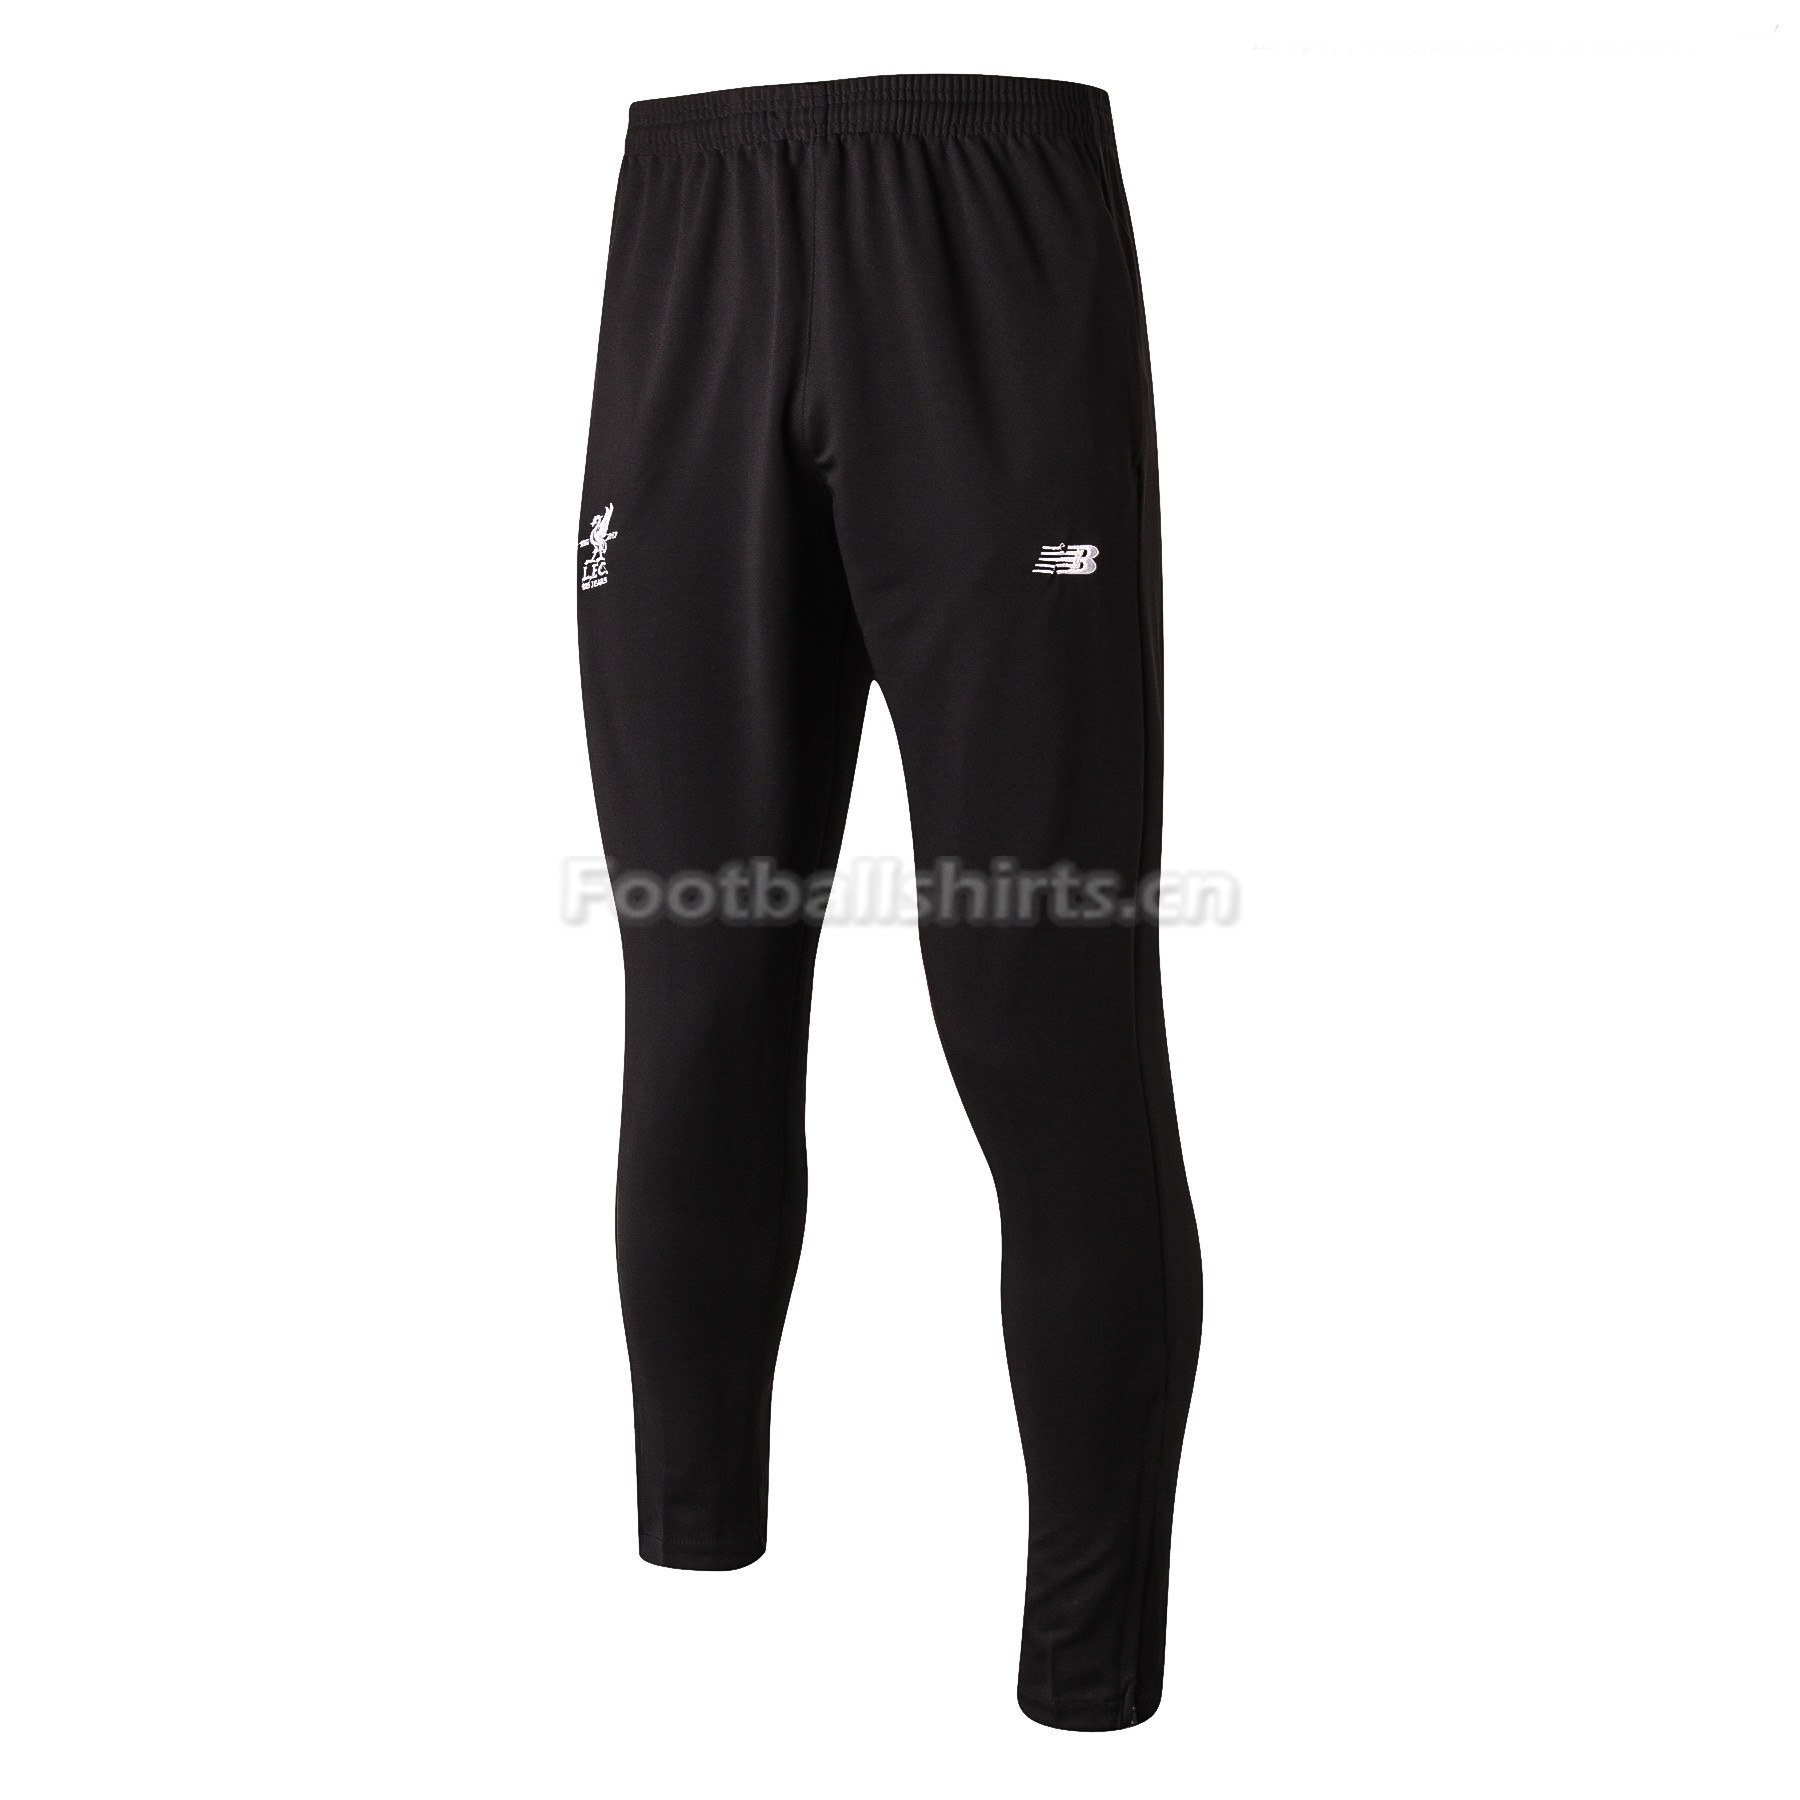 Liverpool Black Tracksuit Pants (Trousers) 2017/18